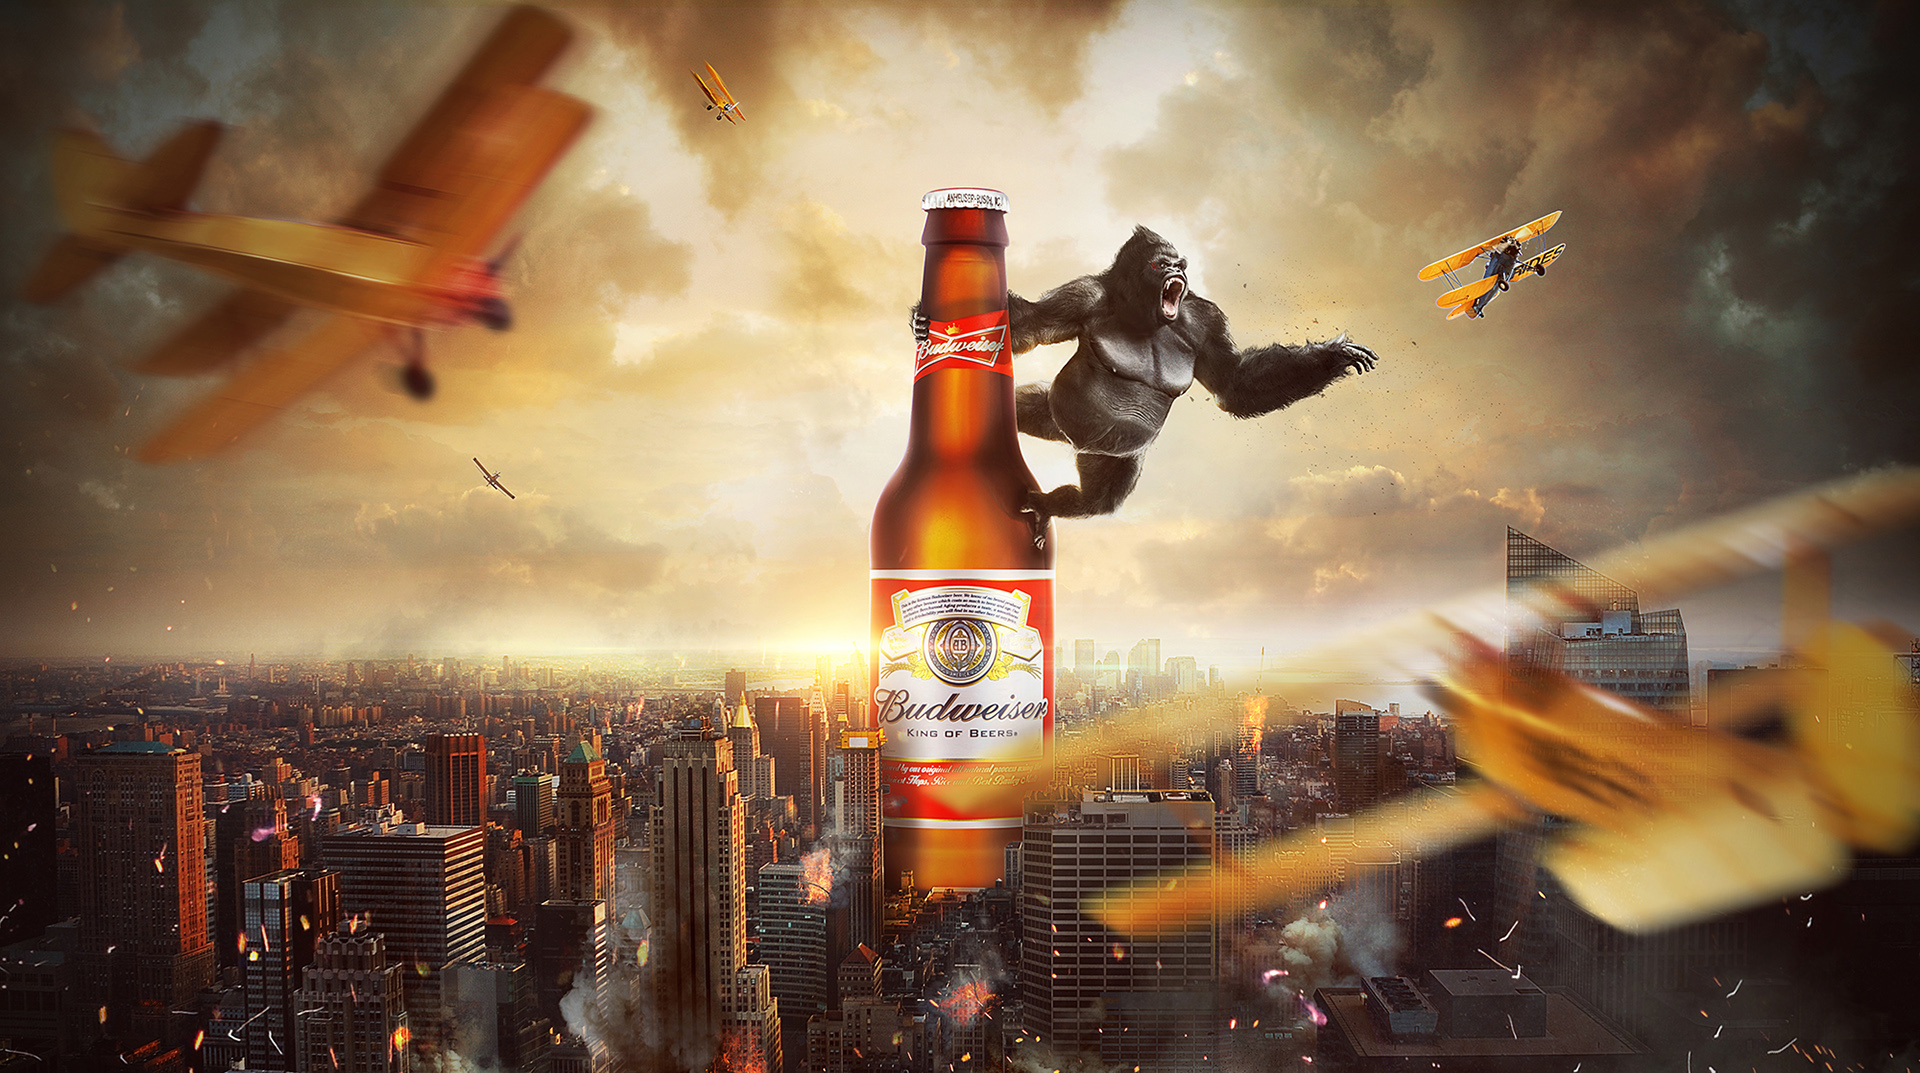 digital imaging  budweiser vietnam vietnam photo manipulation vietnam composite photography photography advertising in vietnam